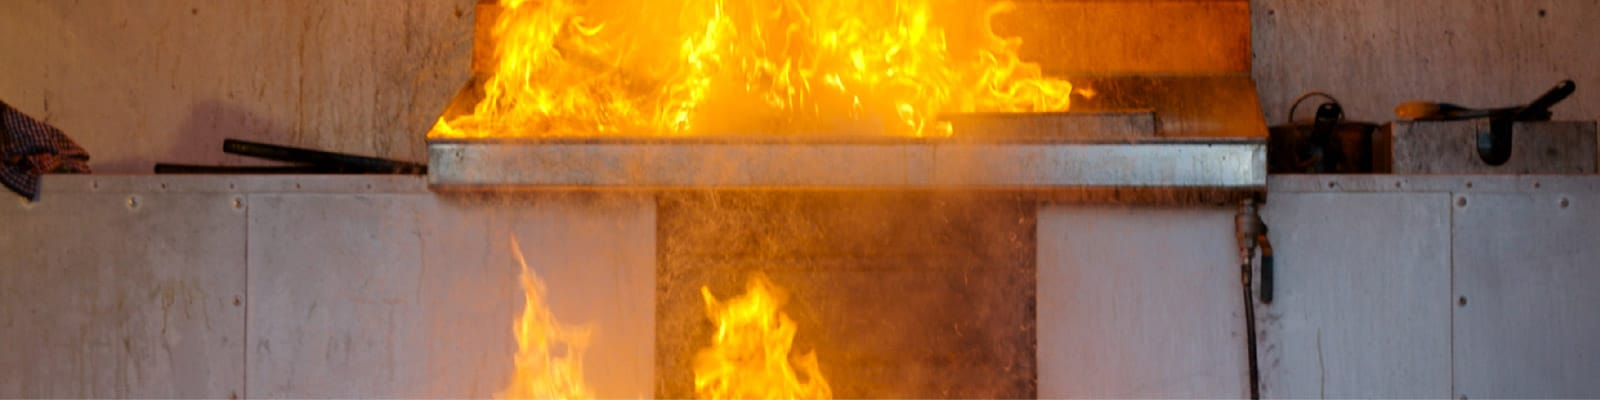 Kitchen-Fire---Fire-Damage-Restoration